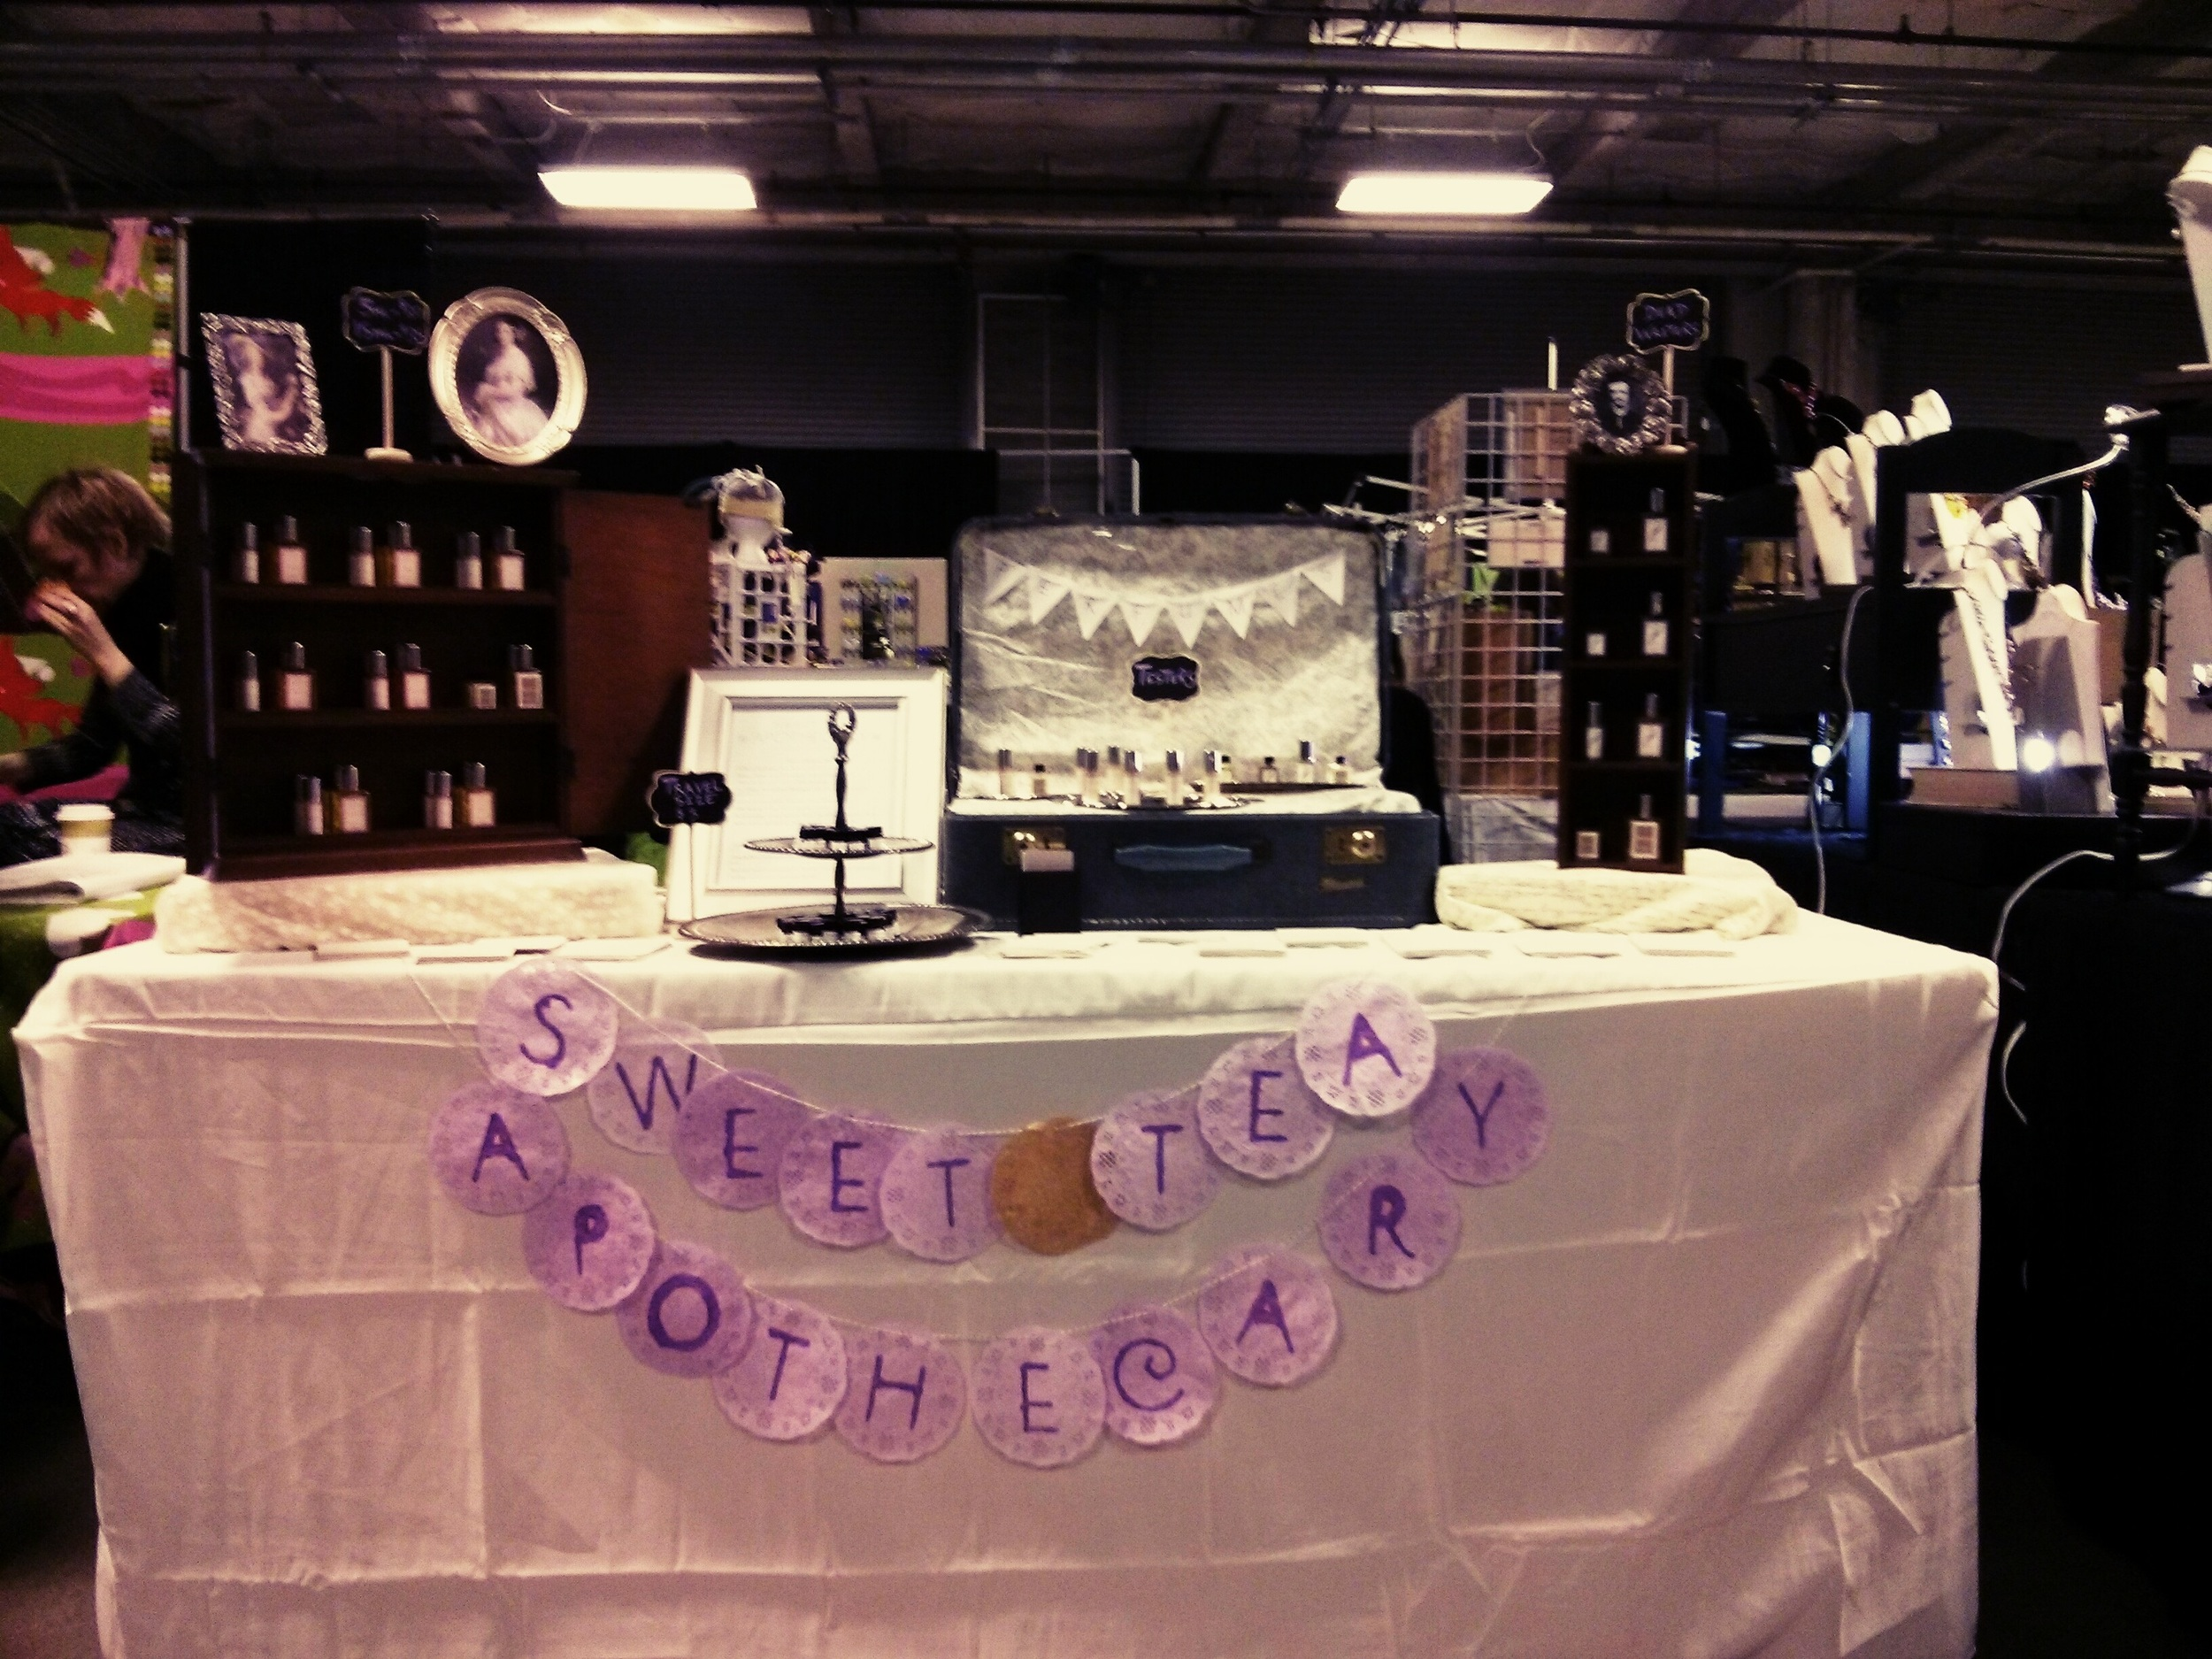 sweet tea apothecary at etsyrain 2013